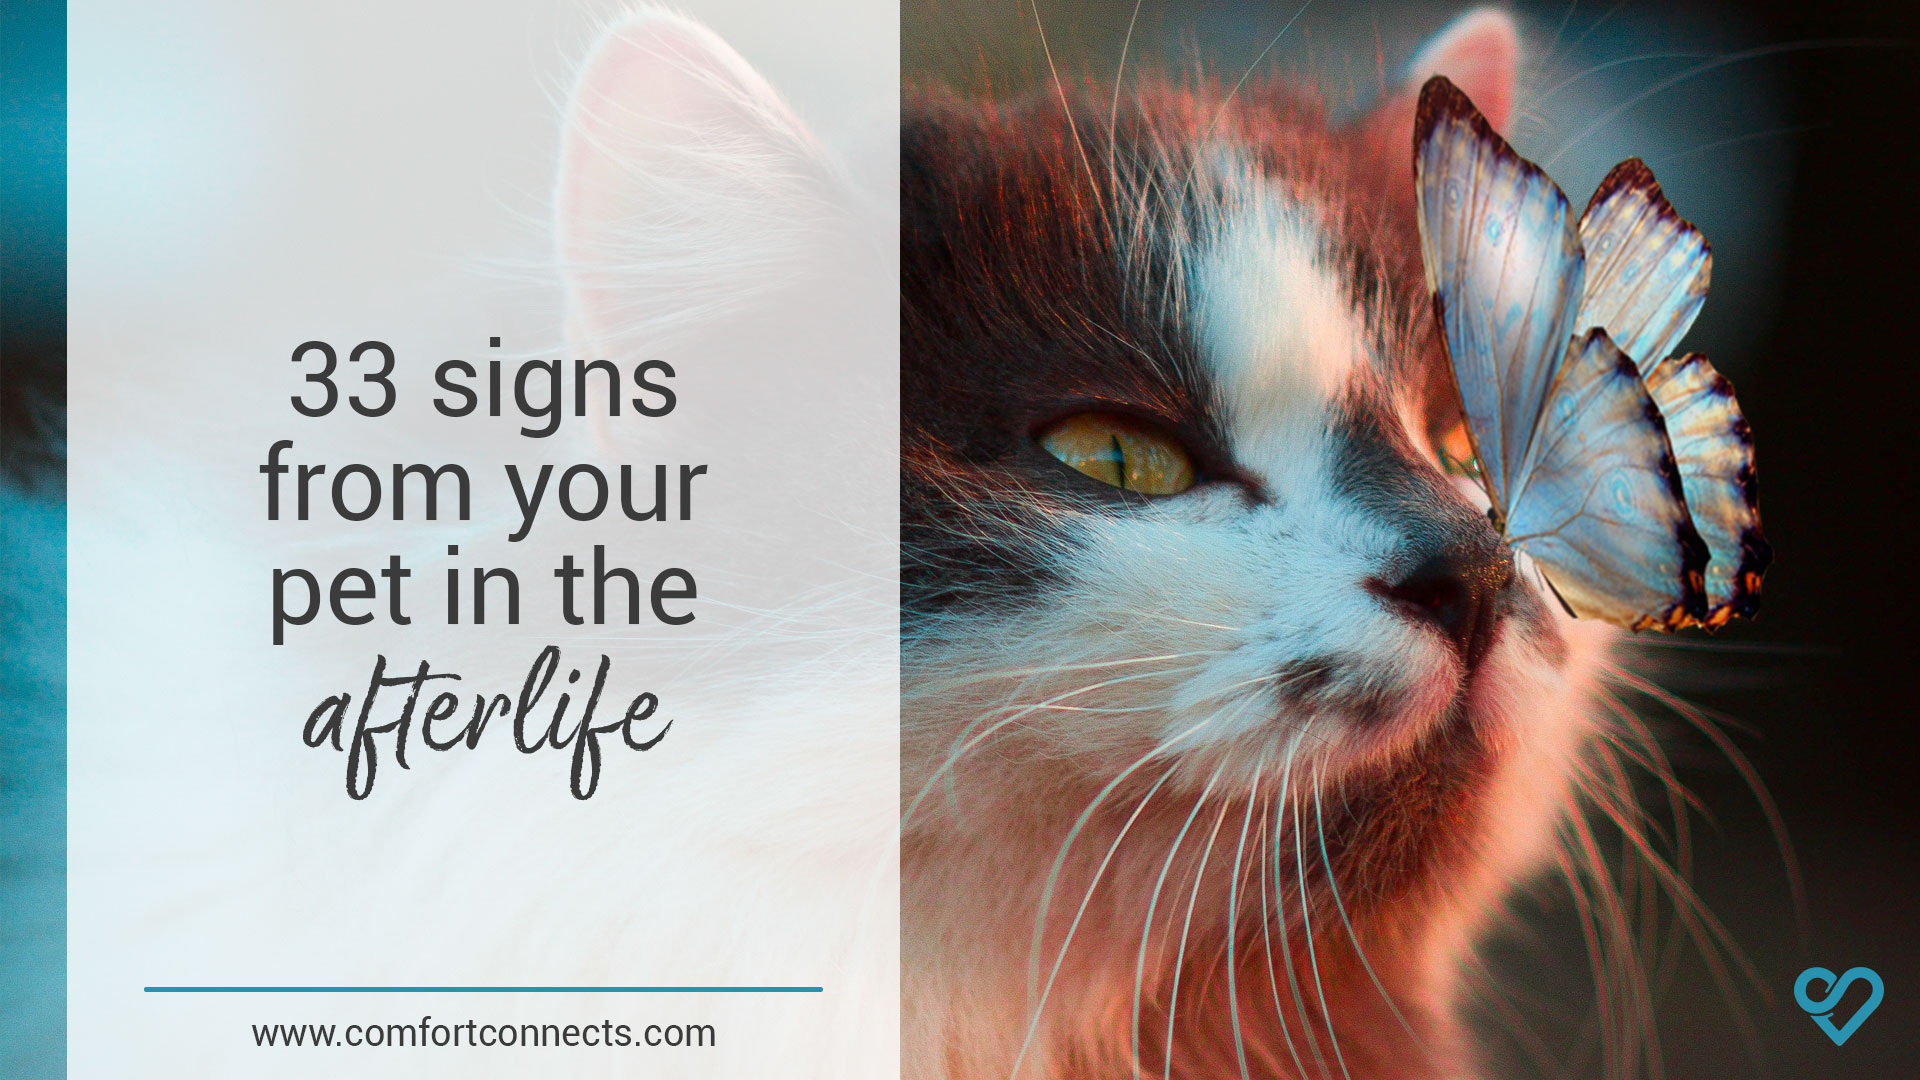 33 Afterlife Signs from your Pet